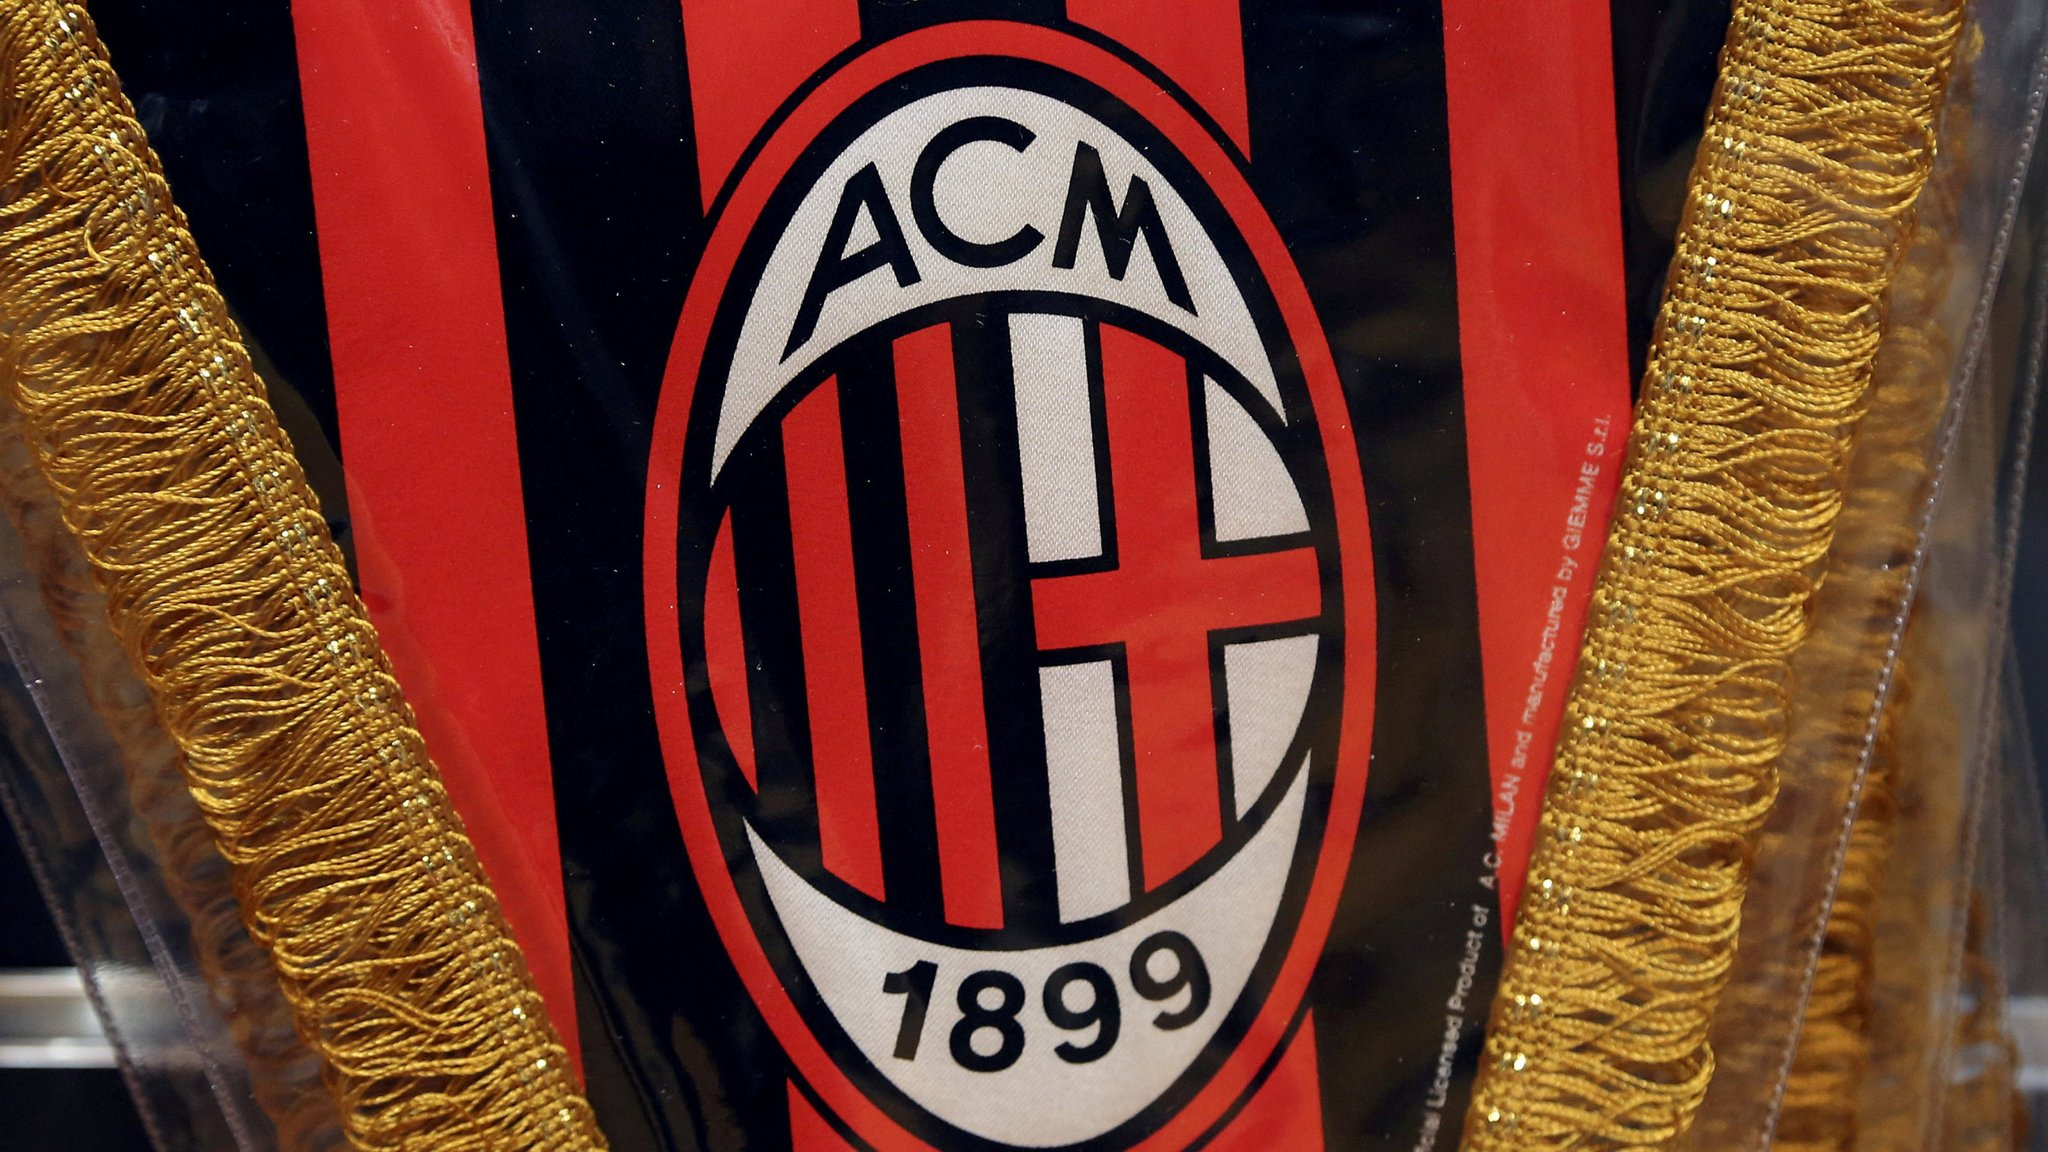 Ac Milan Owner Fails To Repay Elliott Management Financial Times